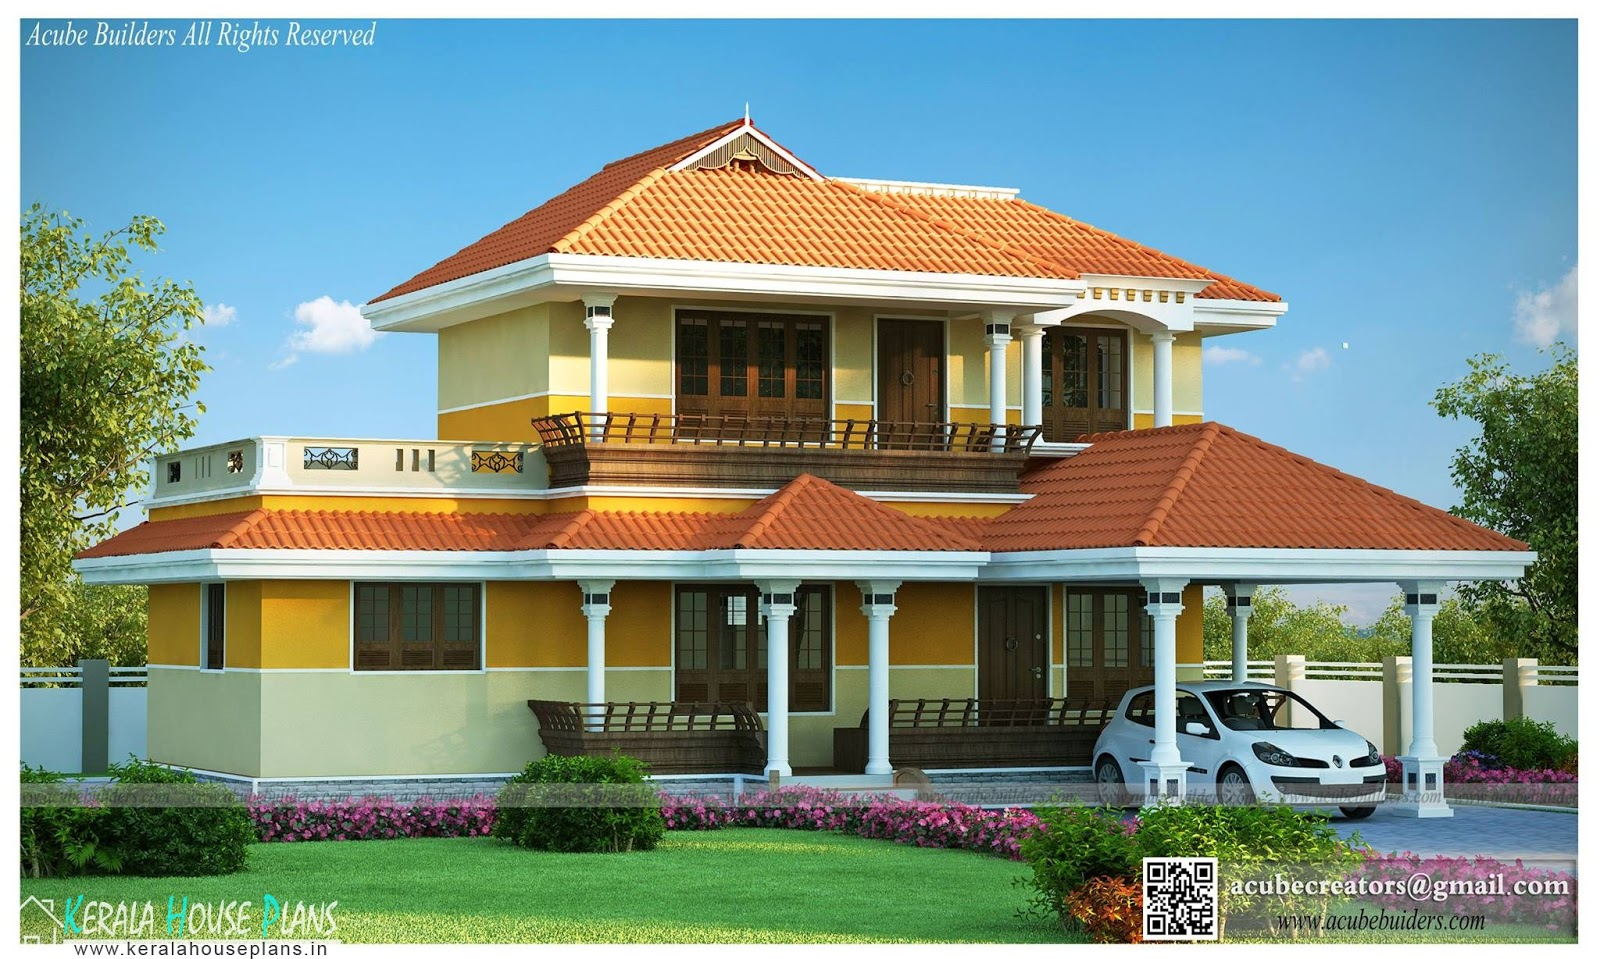 Traditional house plans in kerala kerala house plans for Kerala traditional home plans